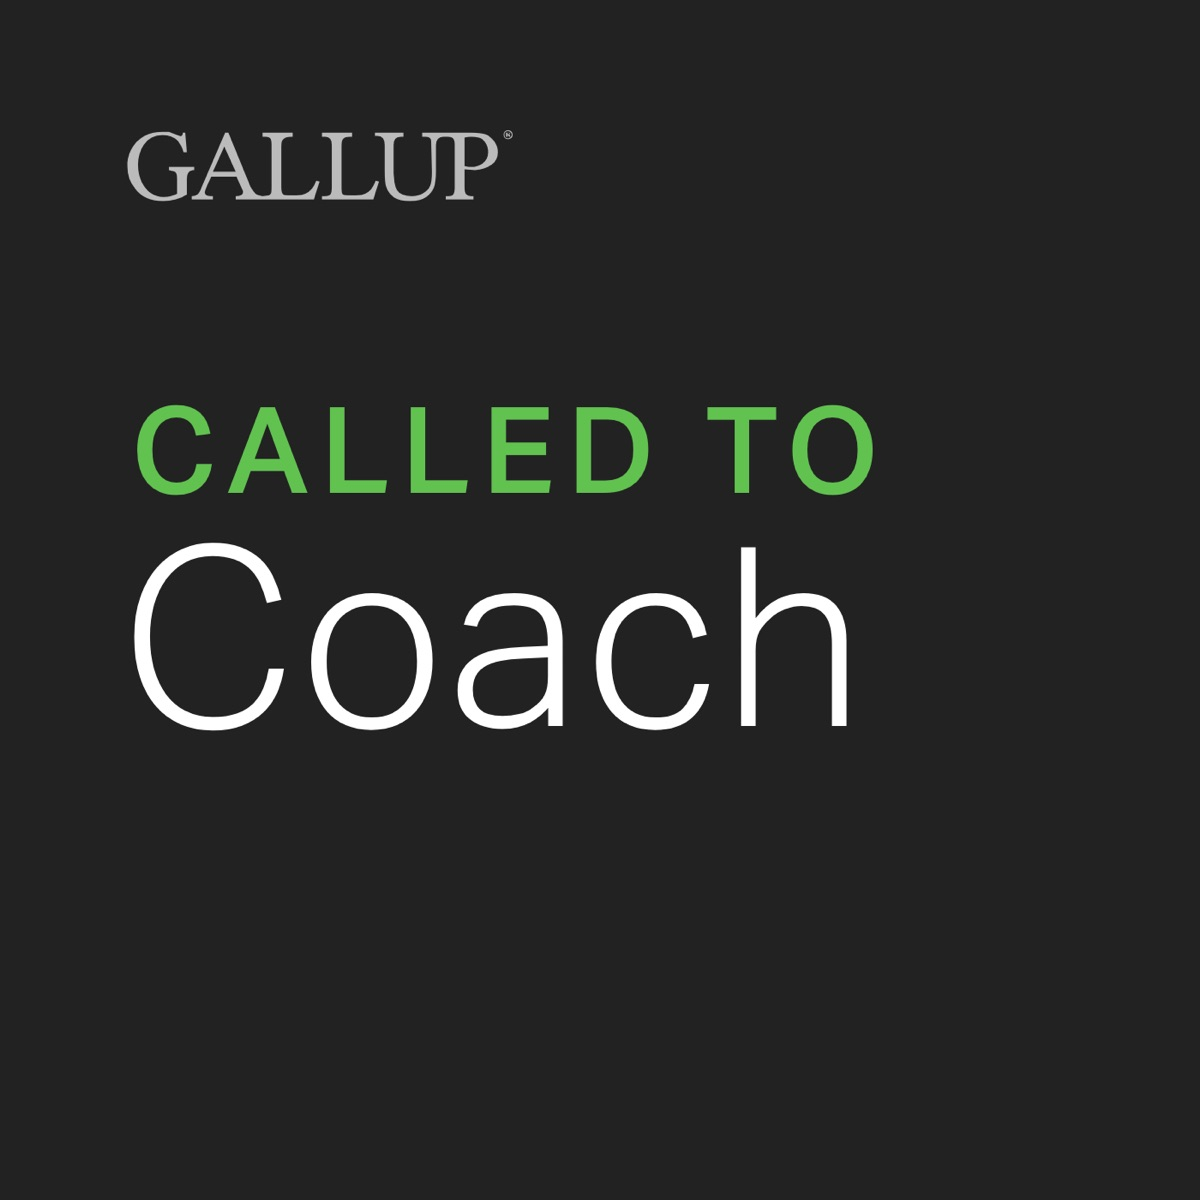 Gallup Called to Coach